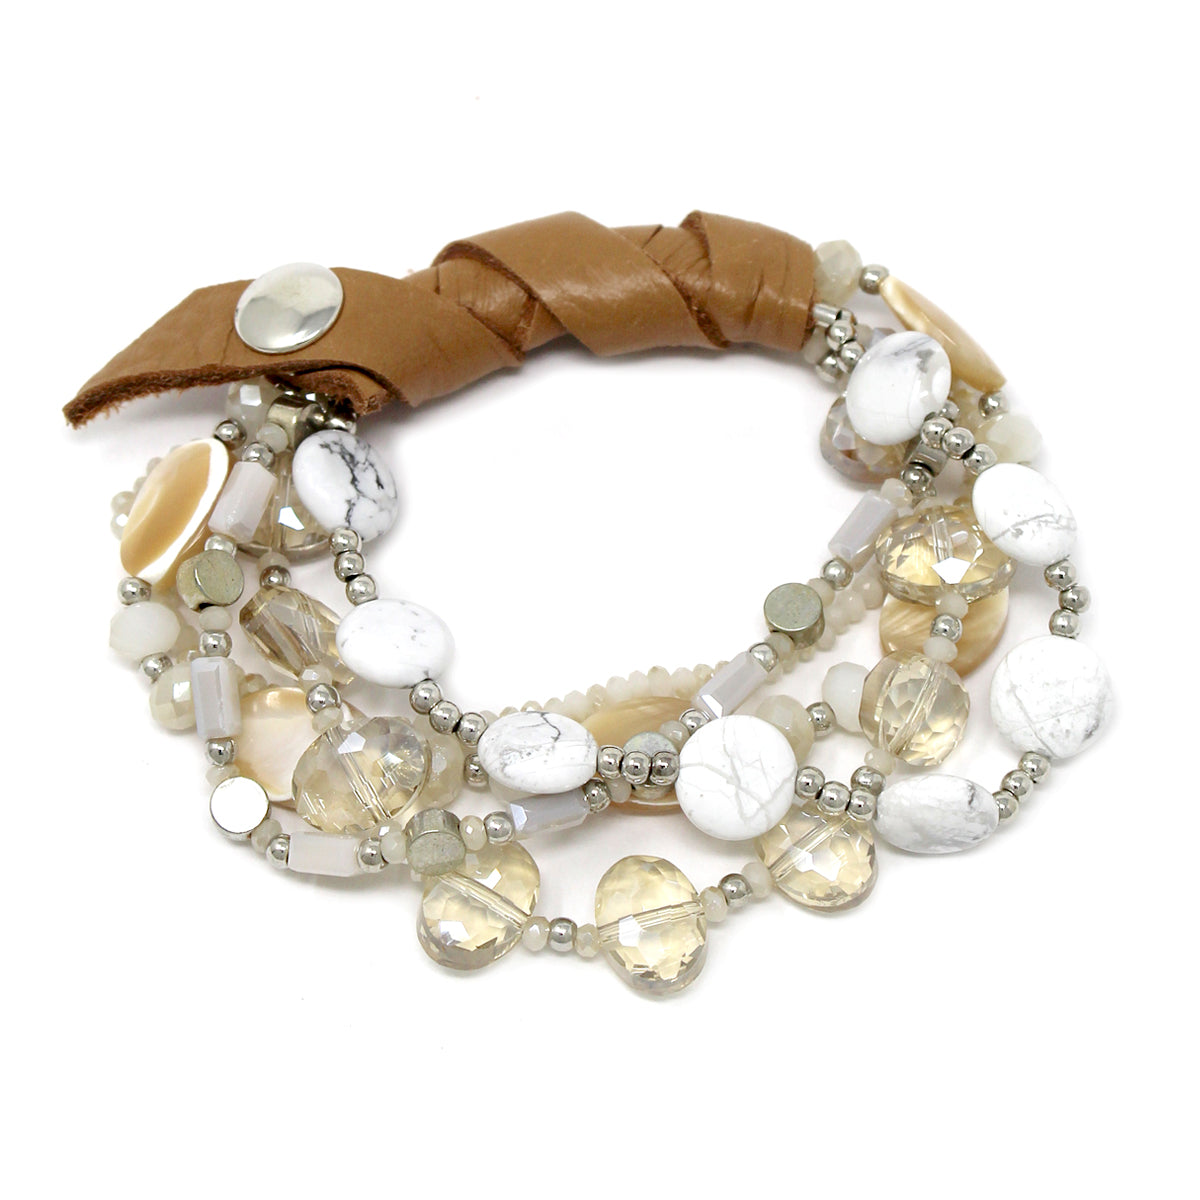 Genuine Leather Wrapped Natural Stone/ Glass/ Shell Beaded Stretch Bracelet